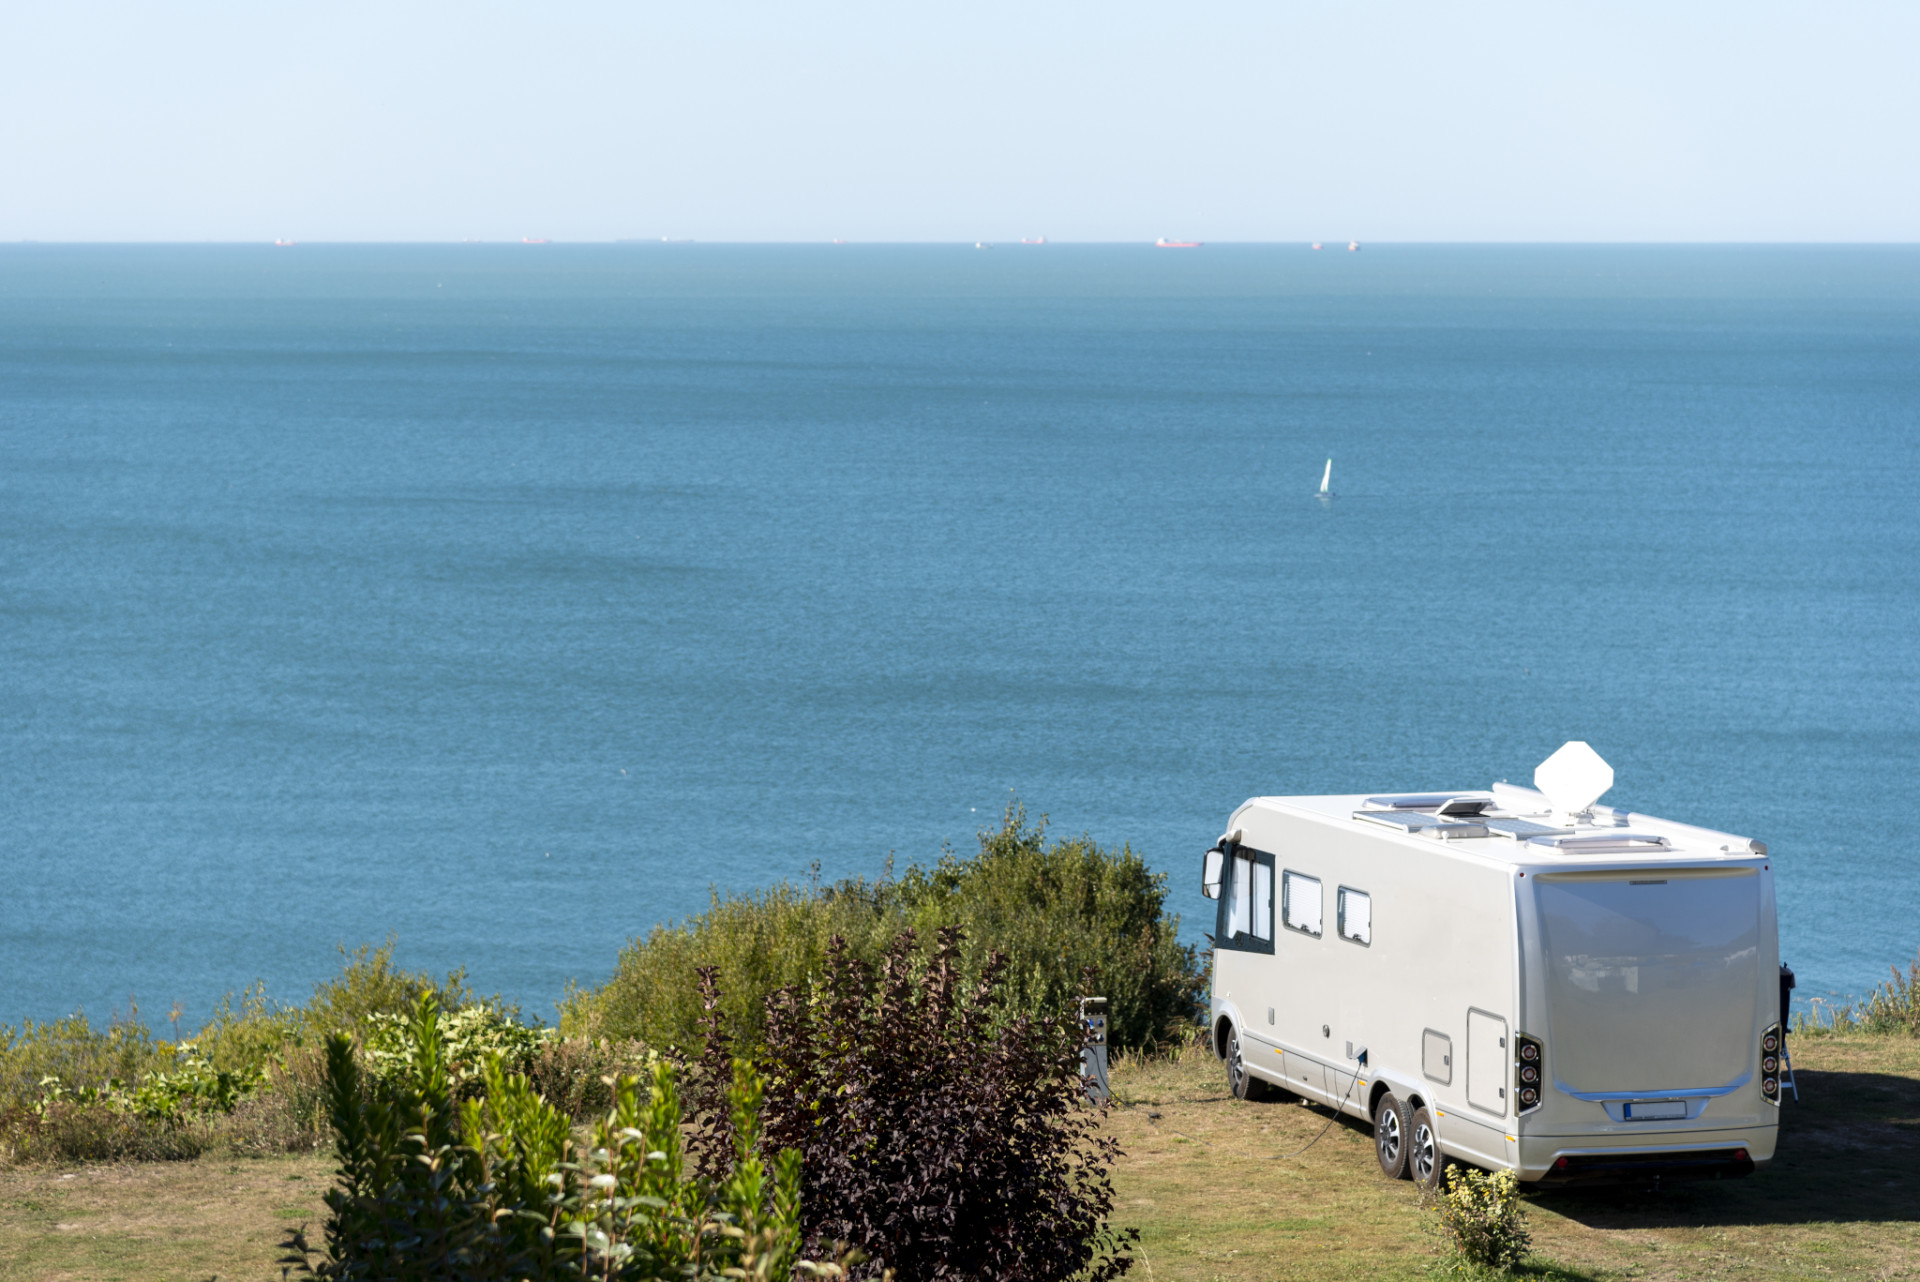 Camping in Frankreich am Meer